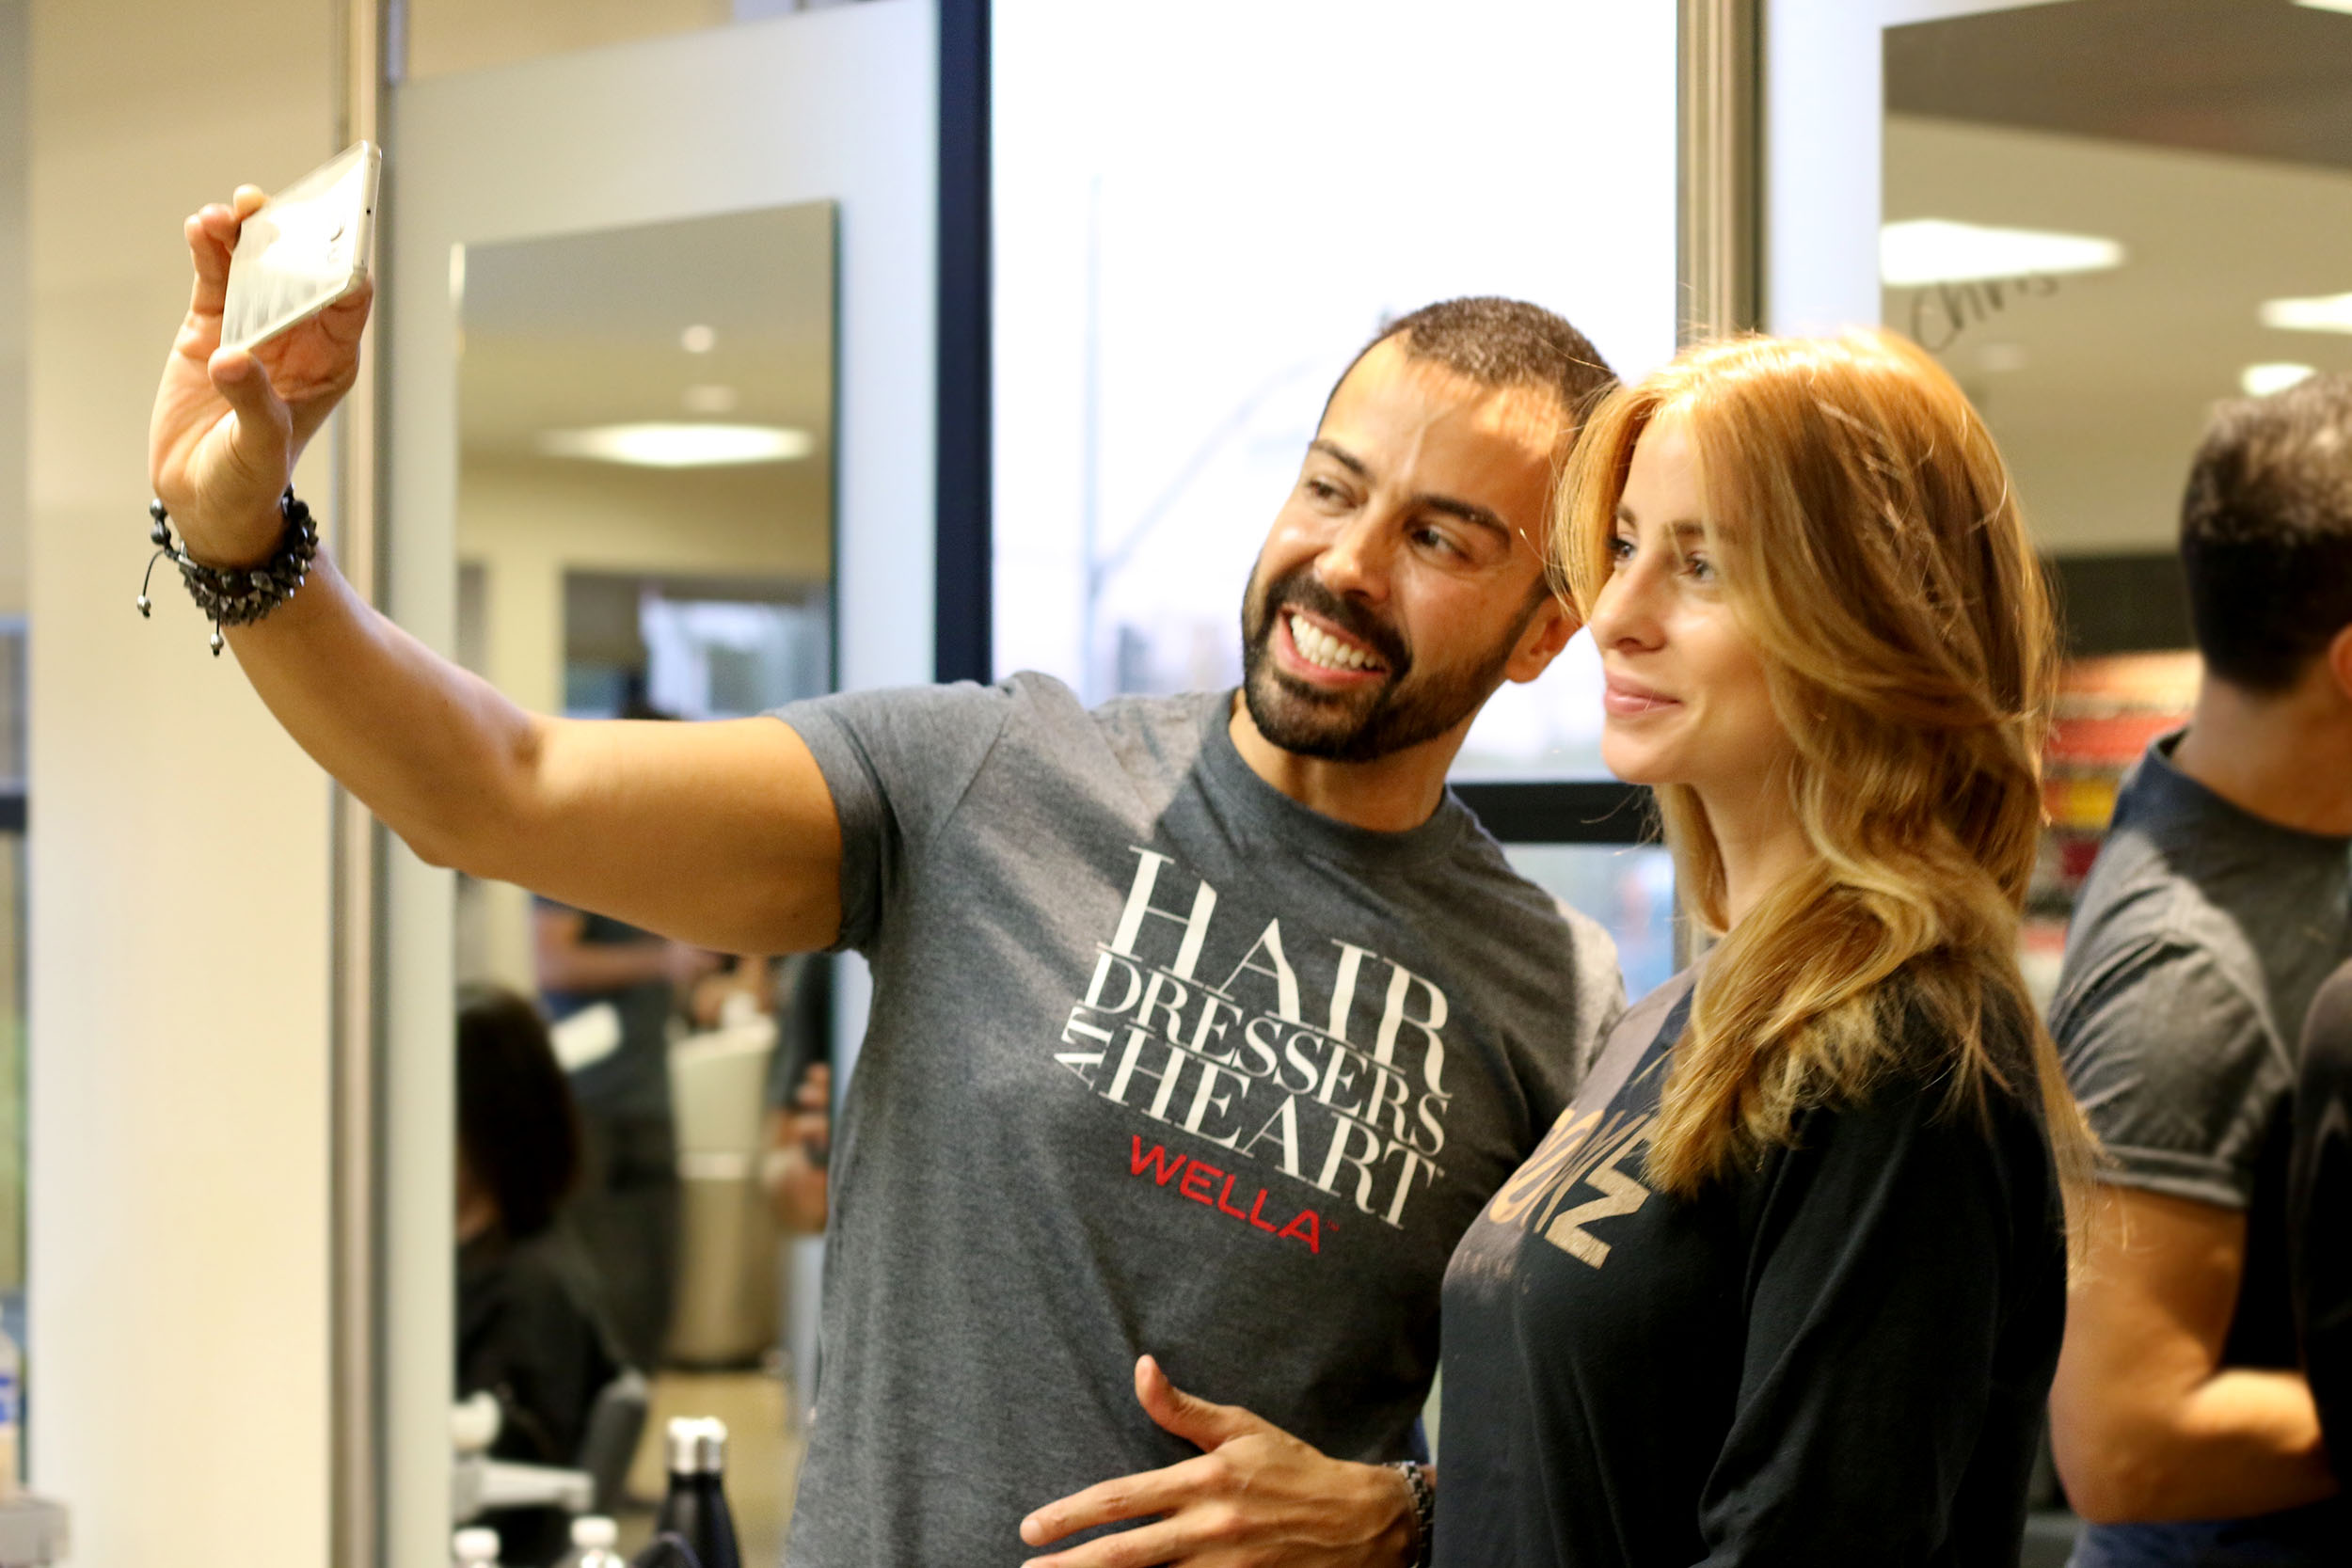 Chris Rosario, Sebastian Design artist and Wella Master Color Expert, takes a selfie with a client.